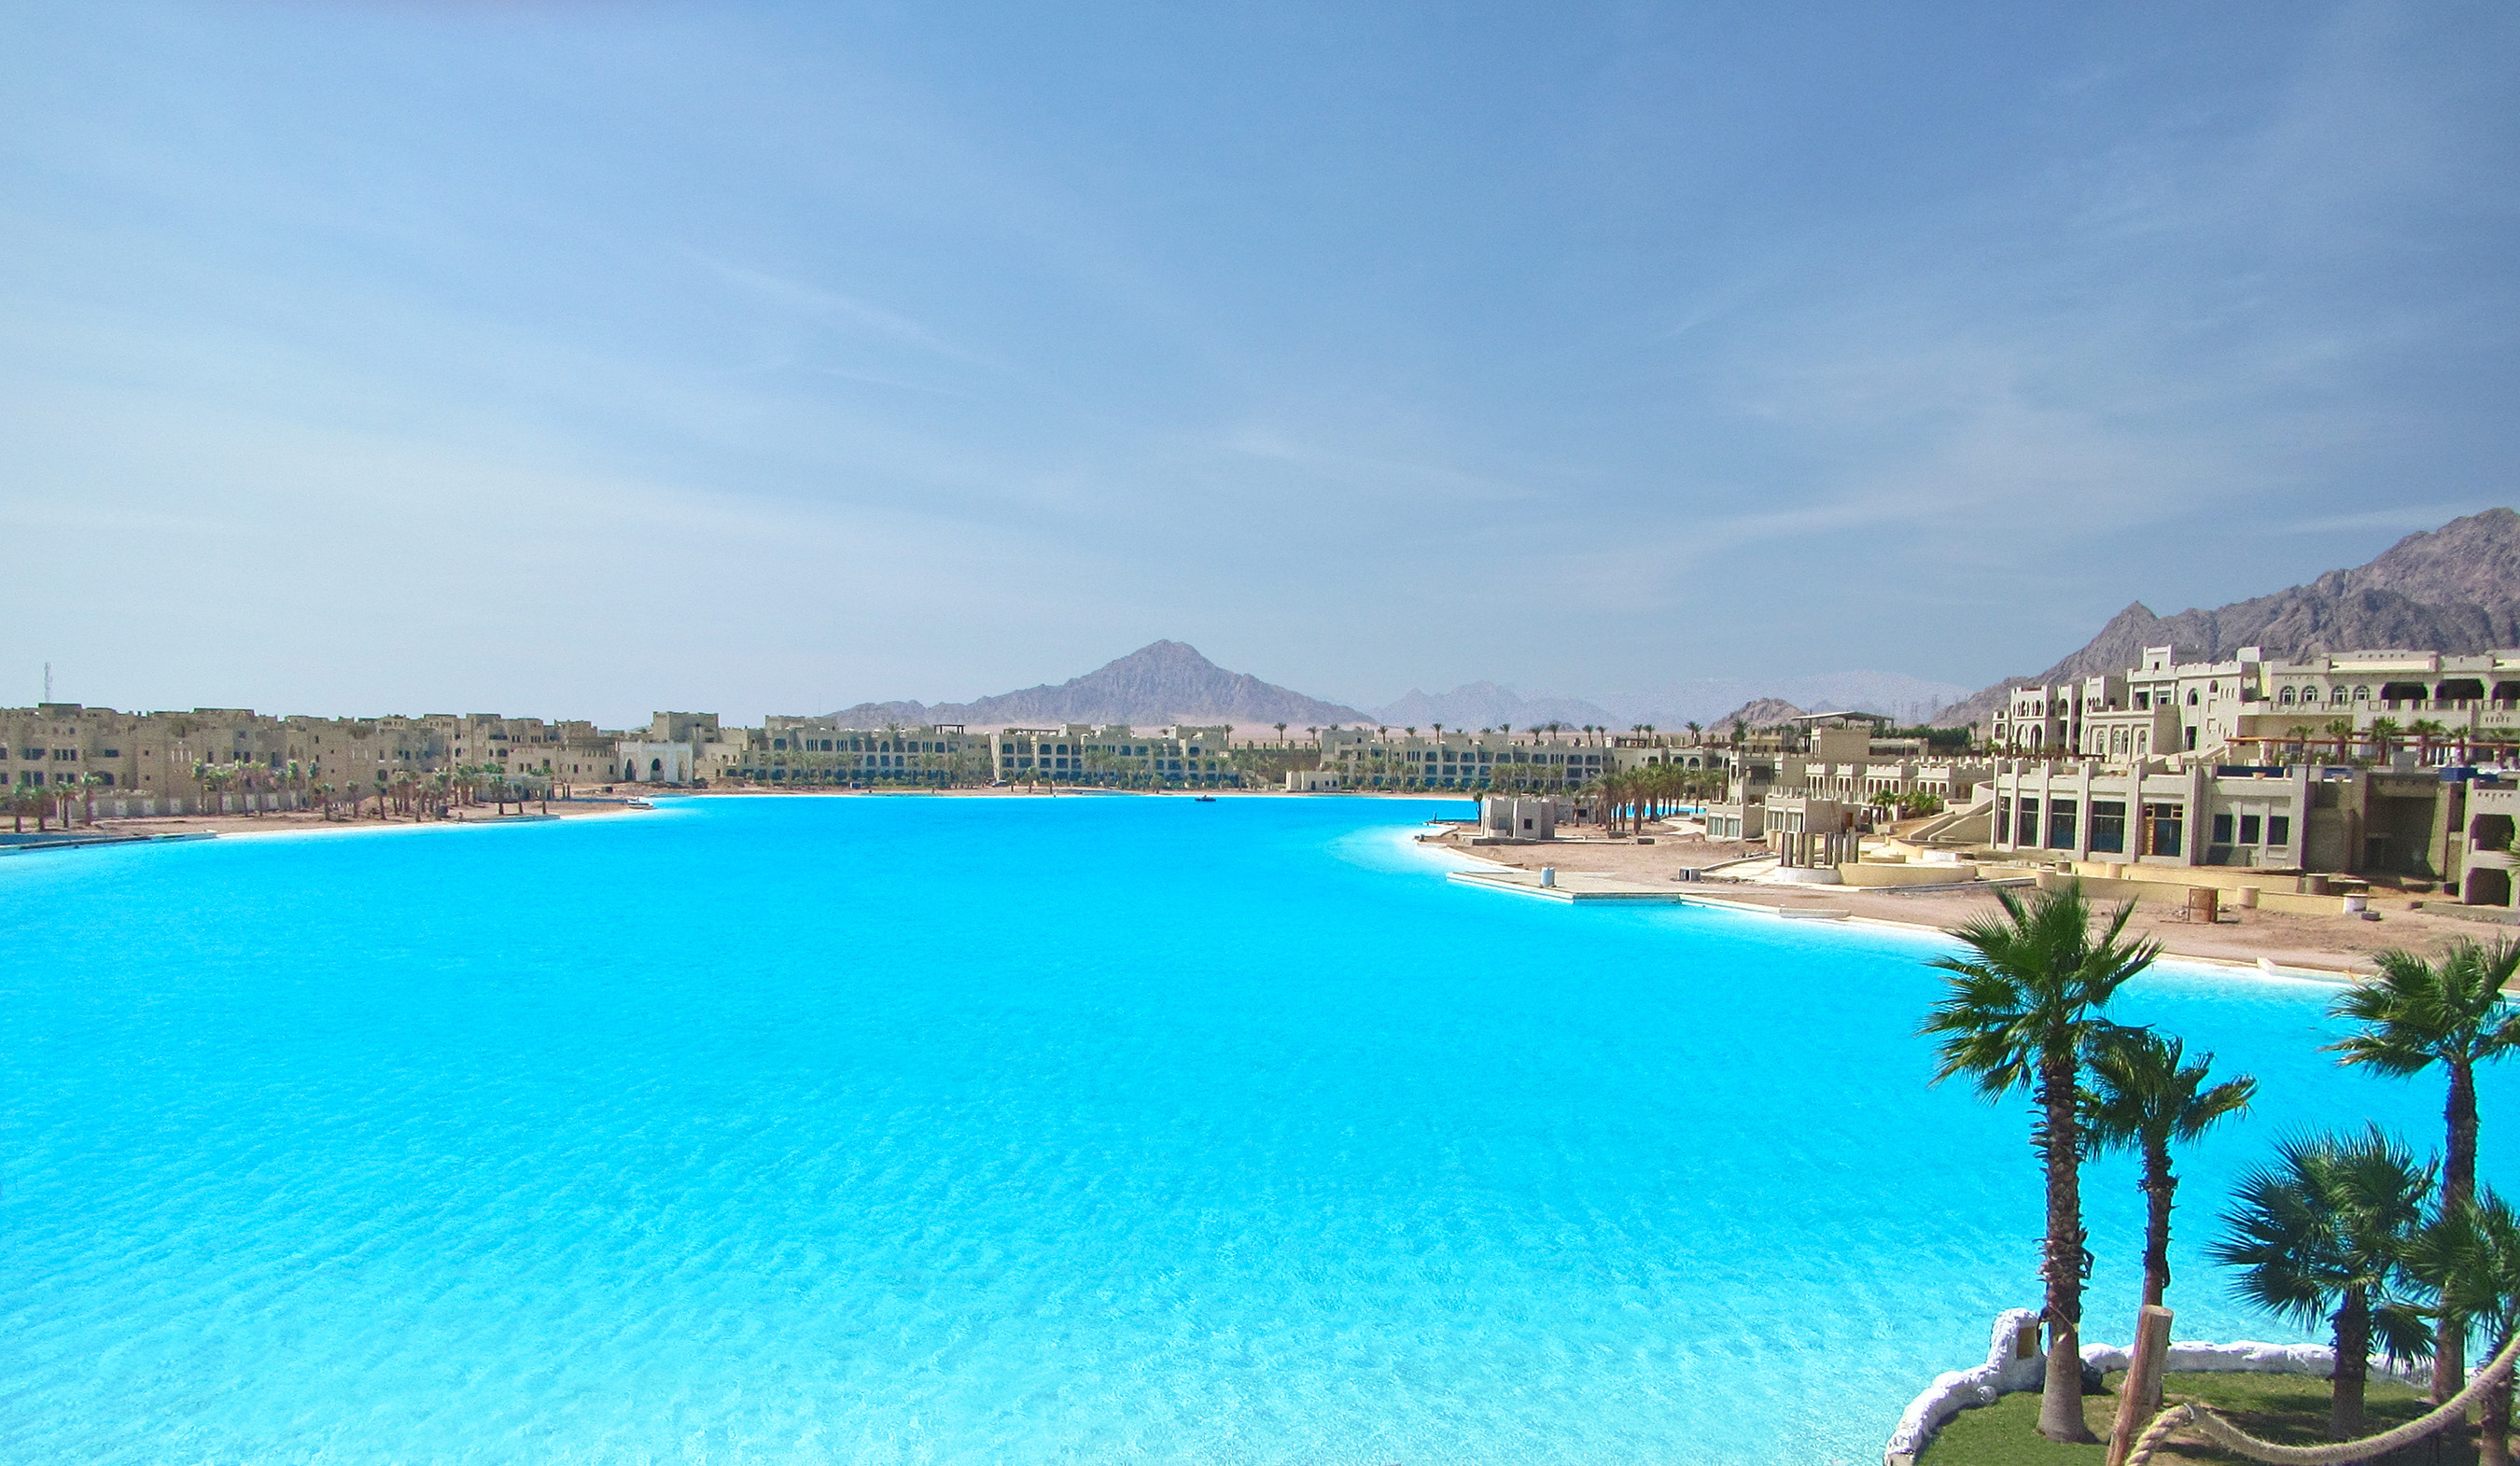 The 30-acre Crystal Lagoon is the main attraction of Citystars Sharm El Sheikh, a popular tourist resort in one of Egypt's most luxurious coastal towns.